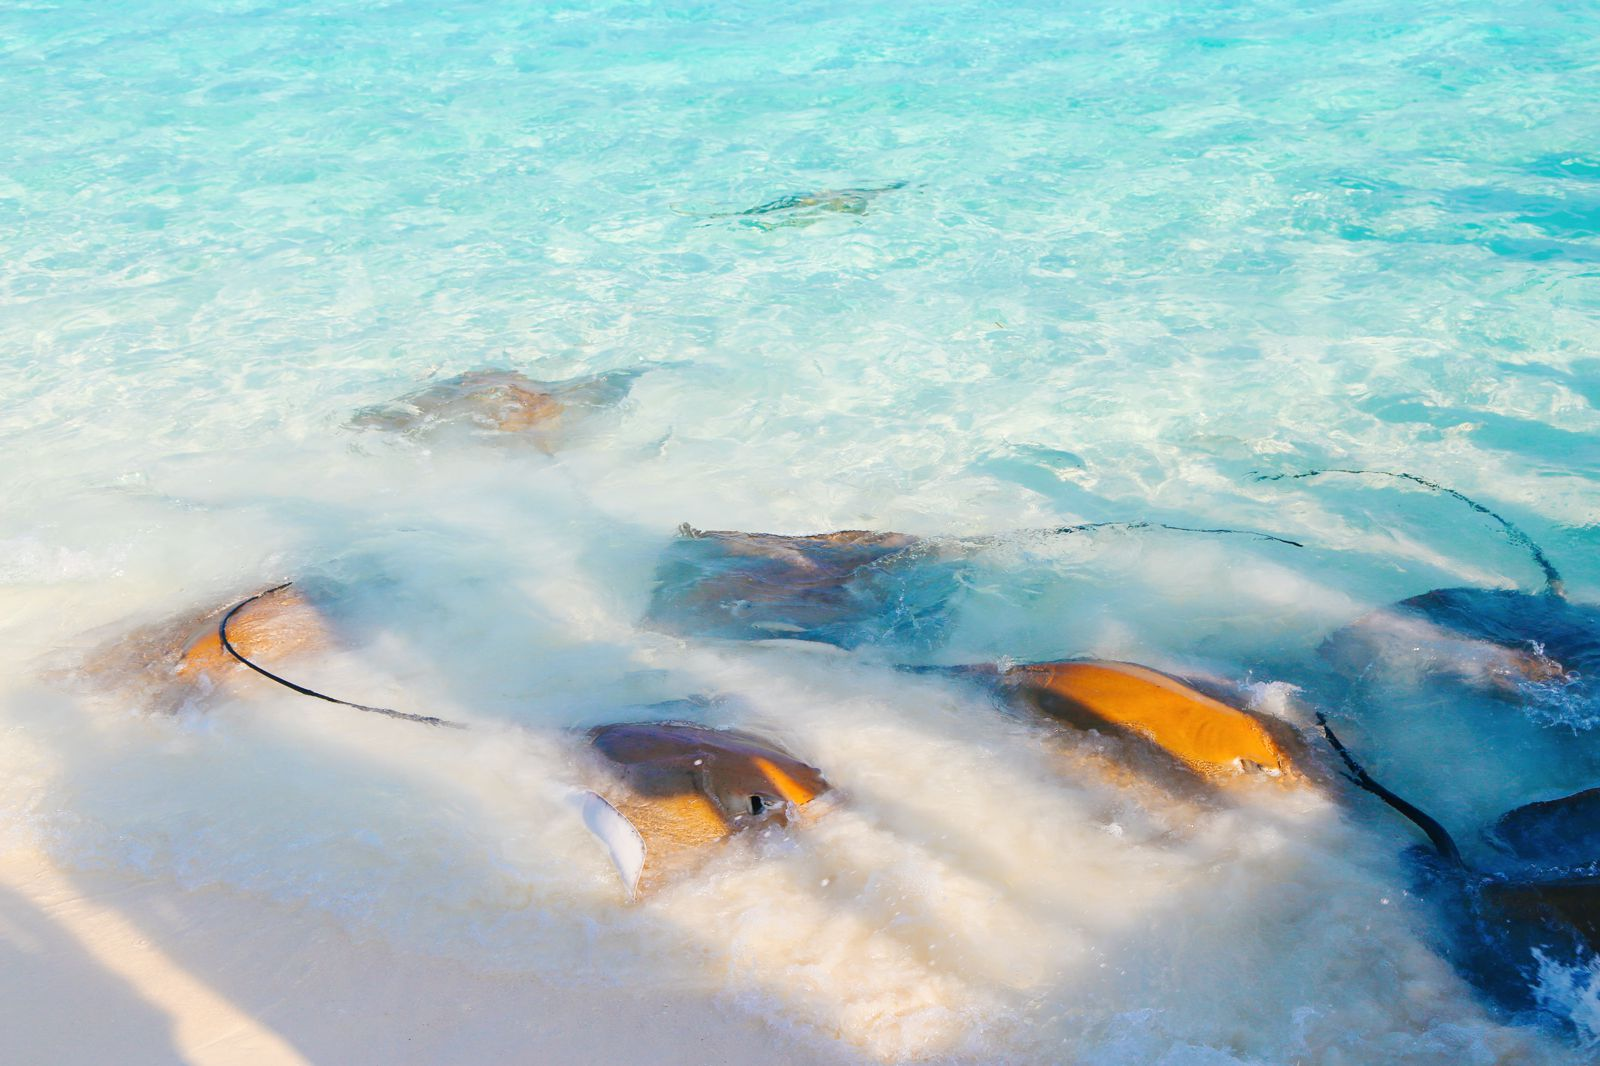 Swimming With Sharks, Turtles, Clownfish And Stingrays In The Maldives (46)